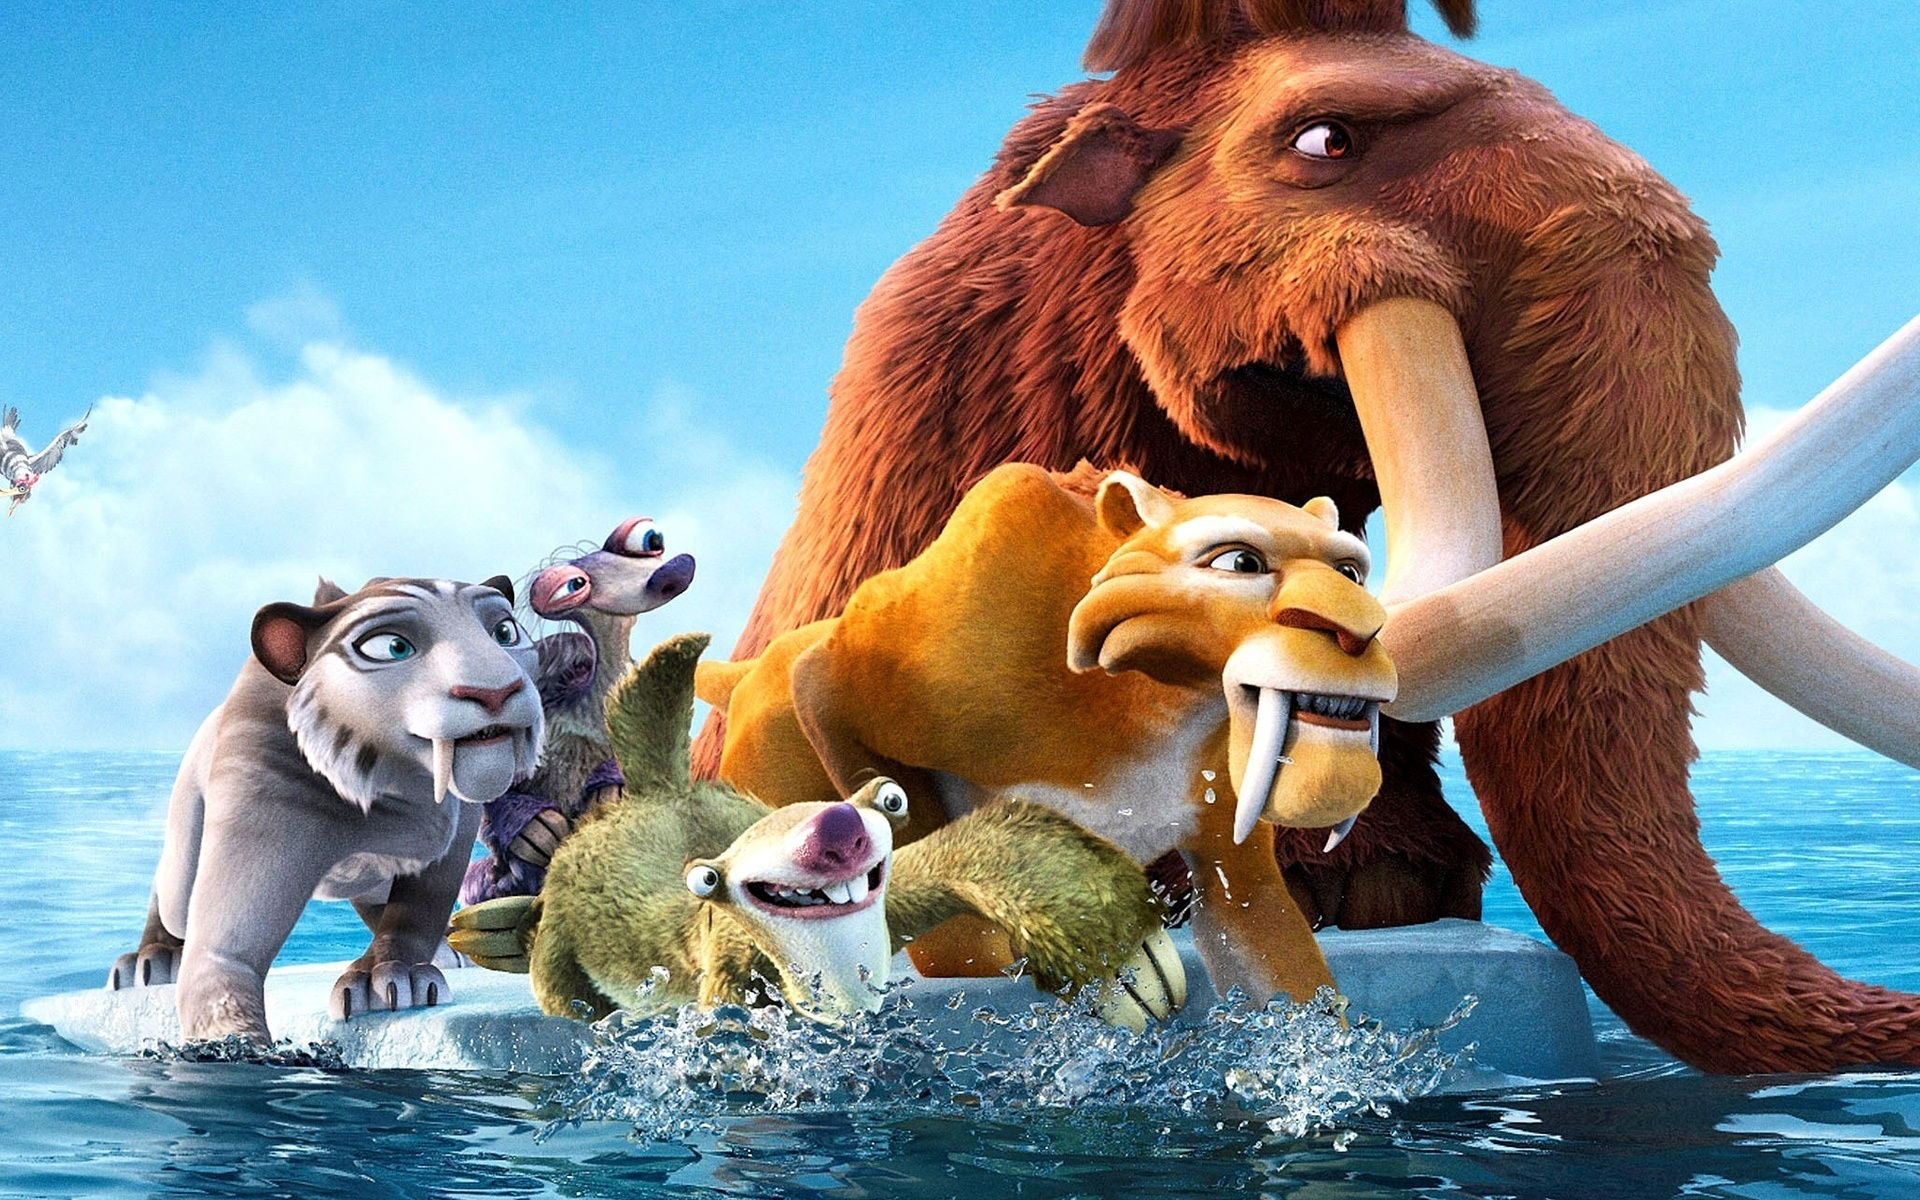 Ice Age: Continental Drift Wallpapers, Pictures, Images